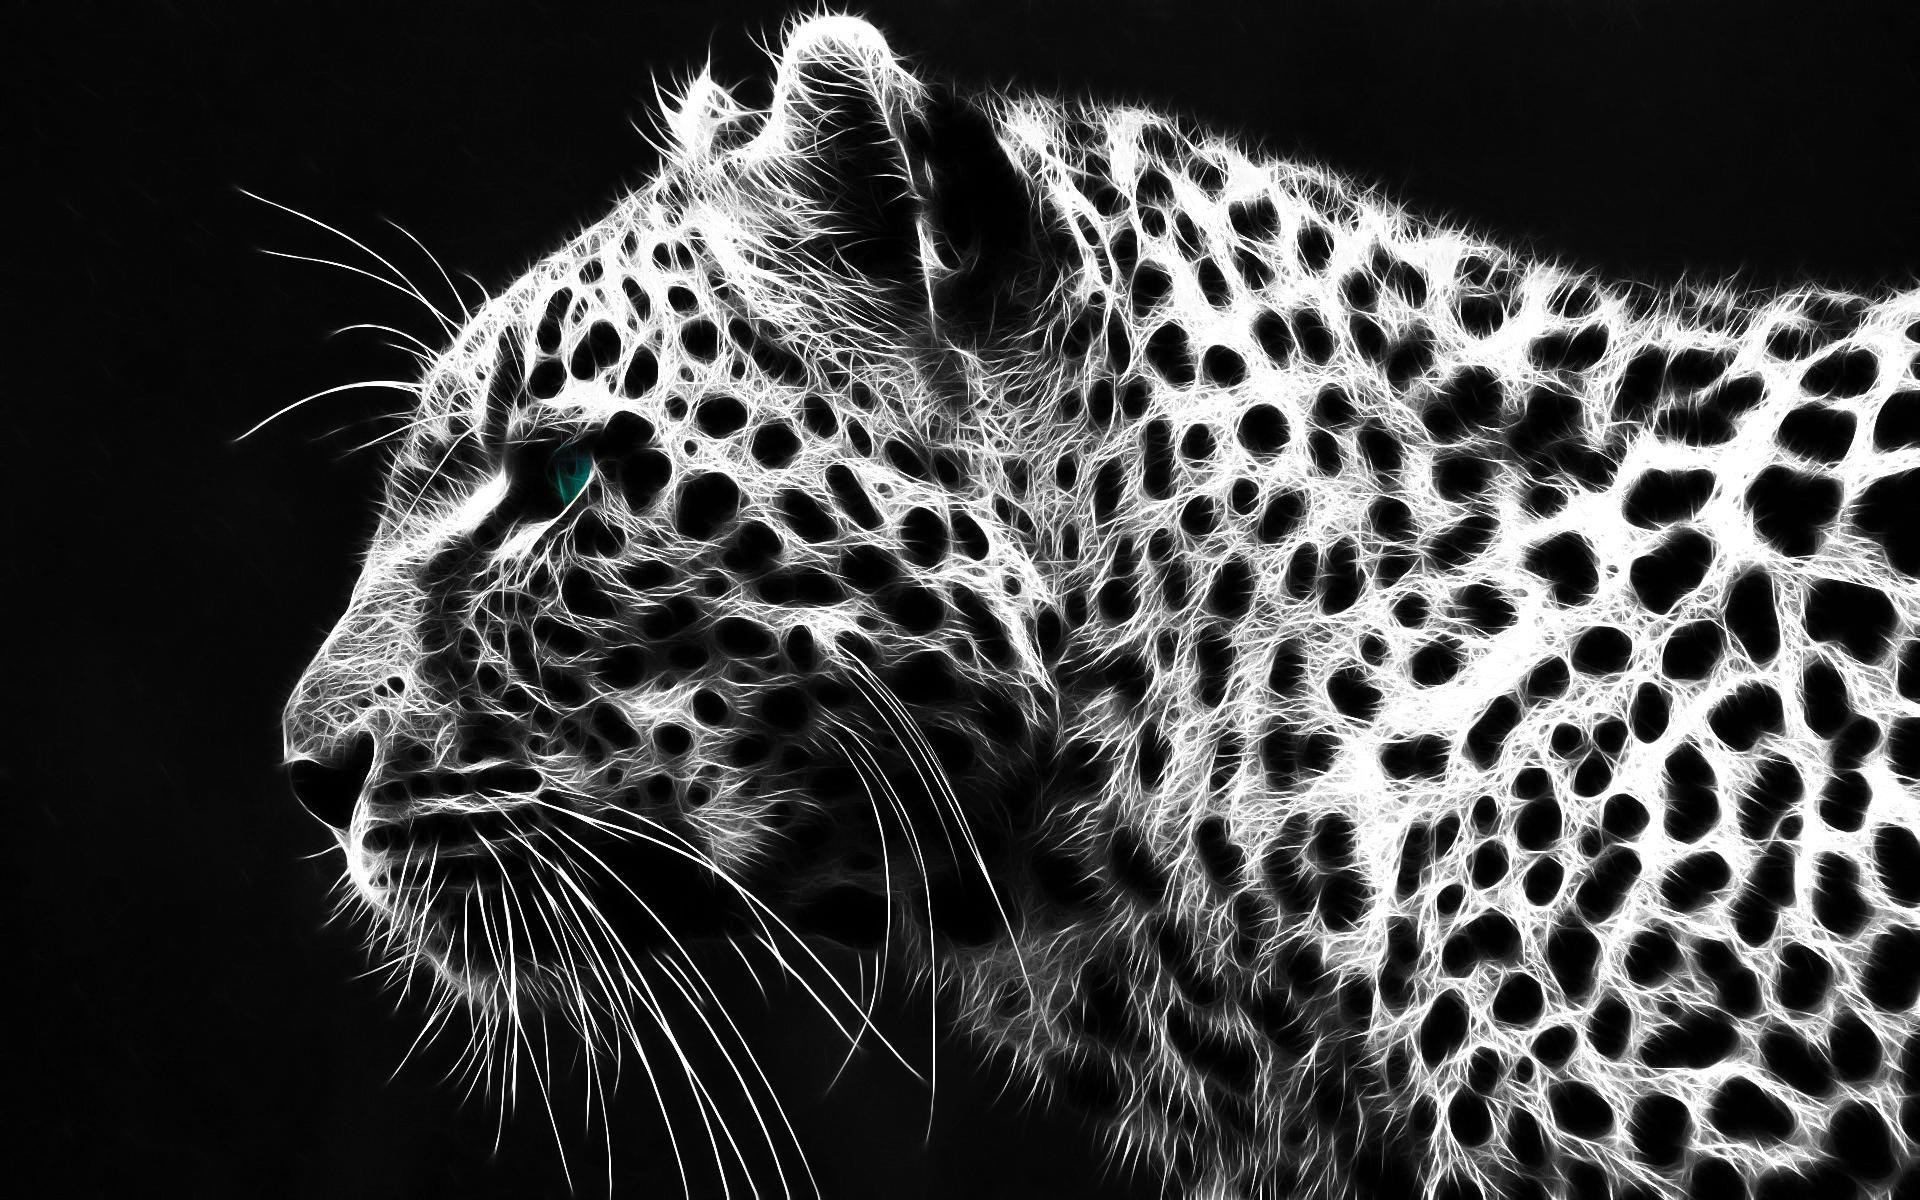 eefcbdc-cheetah-animal-wallpaper-wp3804971